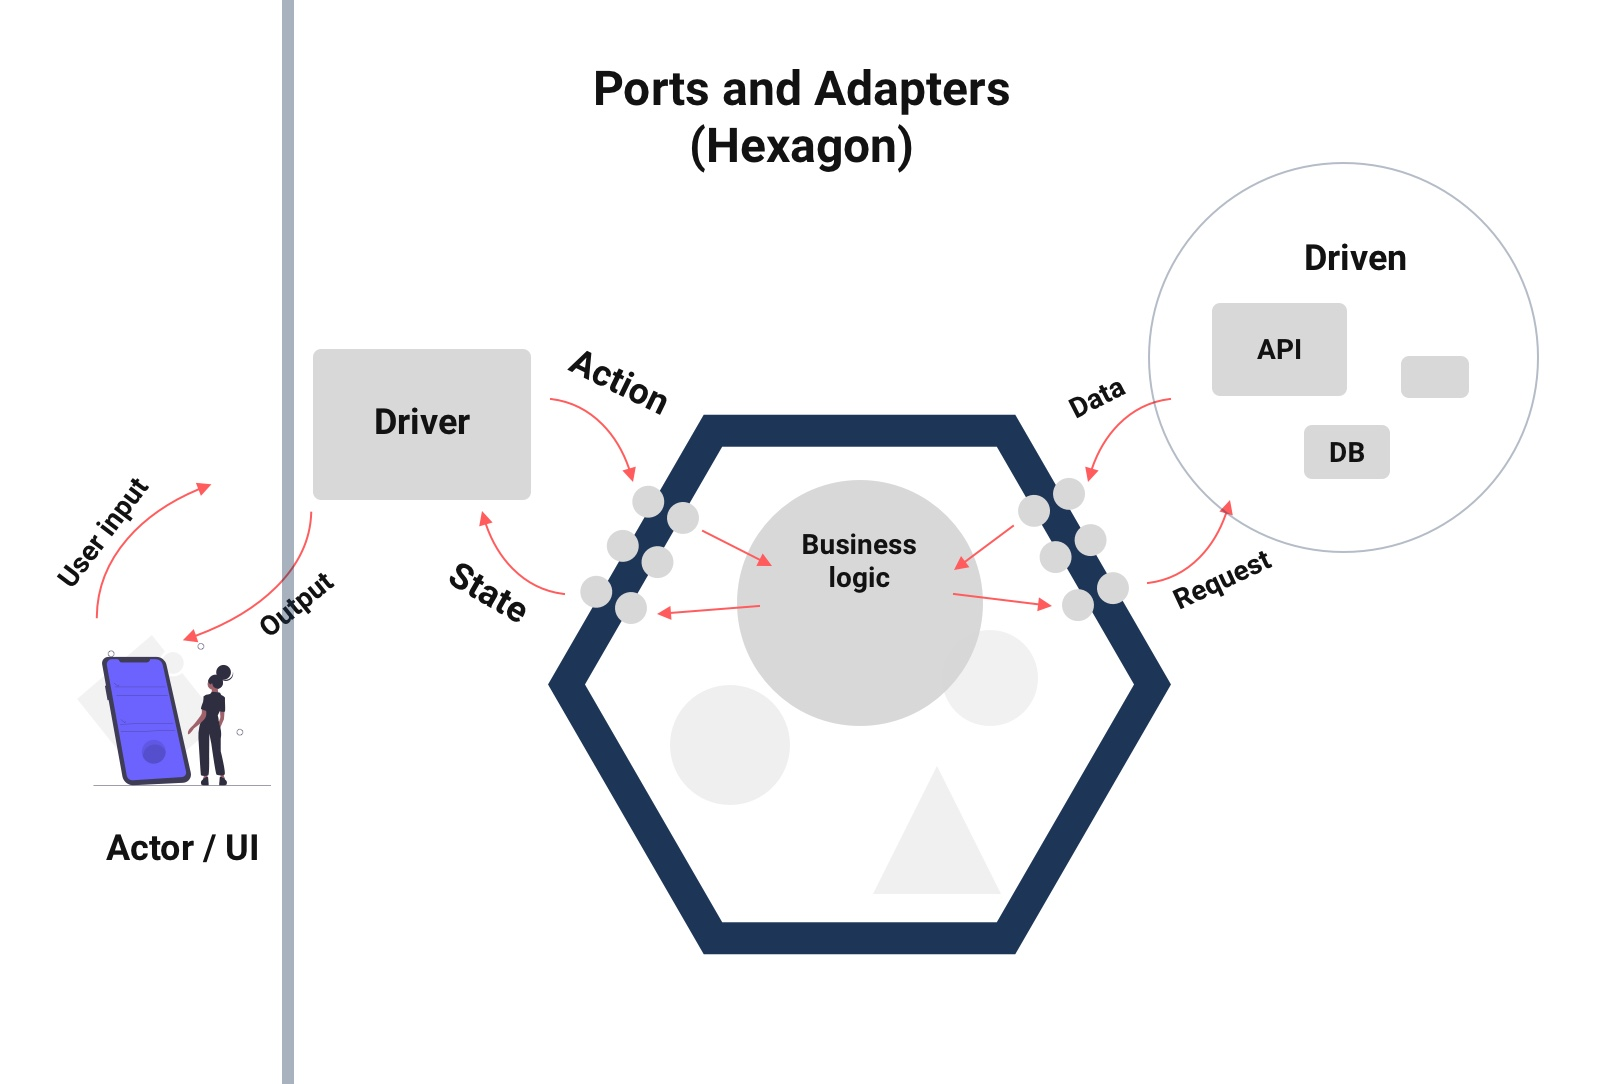 Ports and Adapters flow diagram